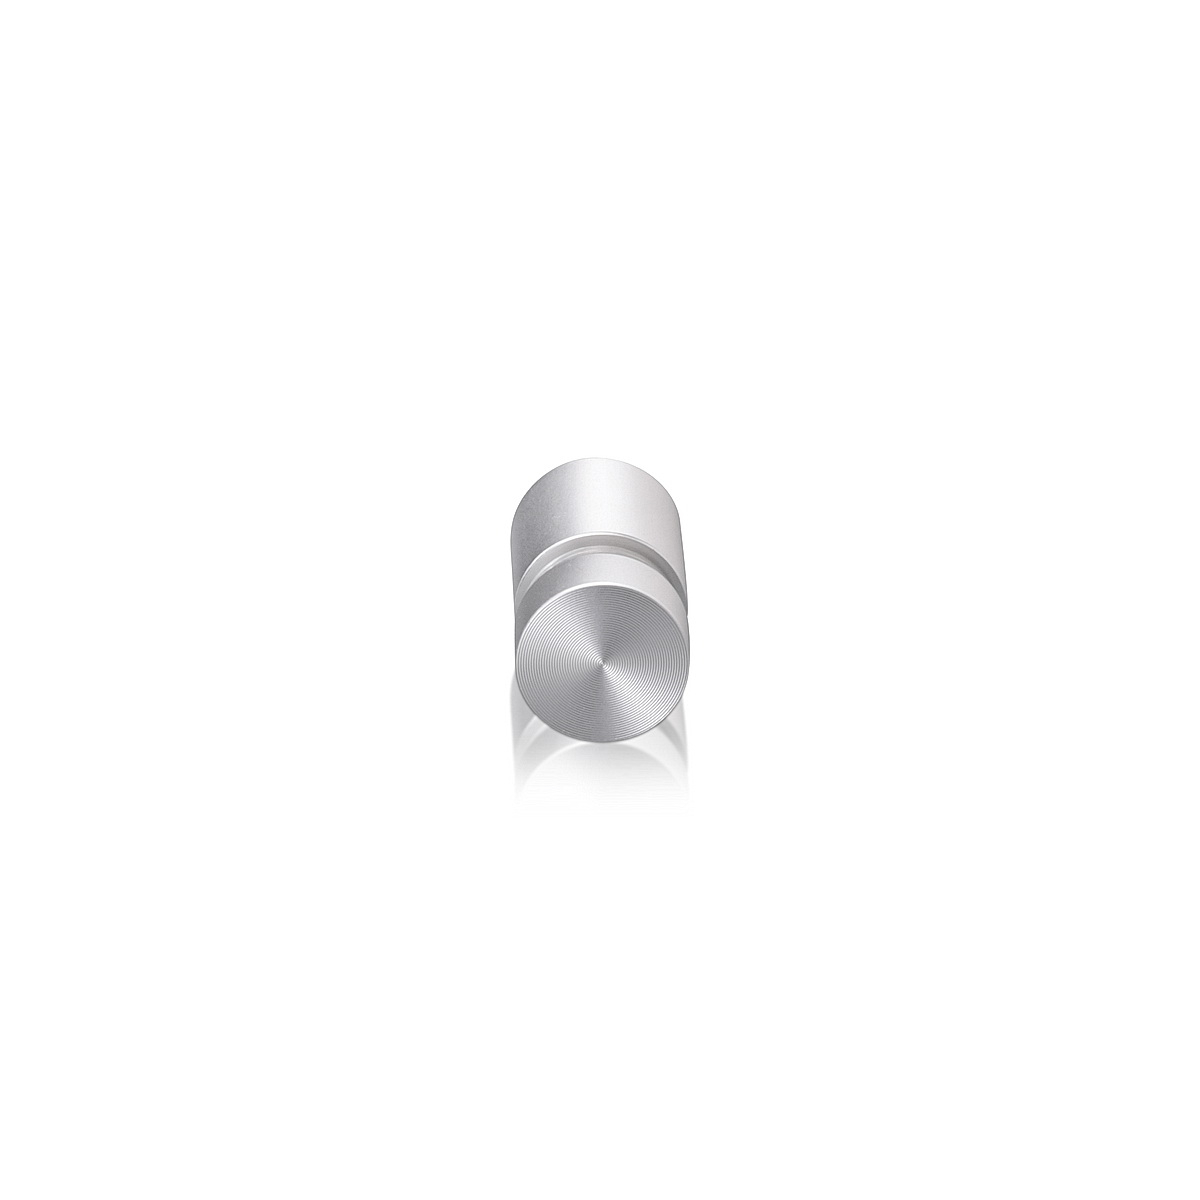 1/2'' Diameter X 1/2'' Barrel Length, Aluminum Flat Head Standoffs, Clear Anodized Finish Easy Fasten Standoff (For Inside / Outside use) Tamper Proof Standoff